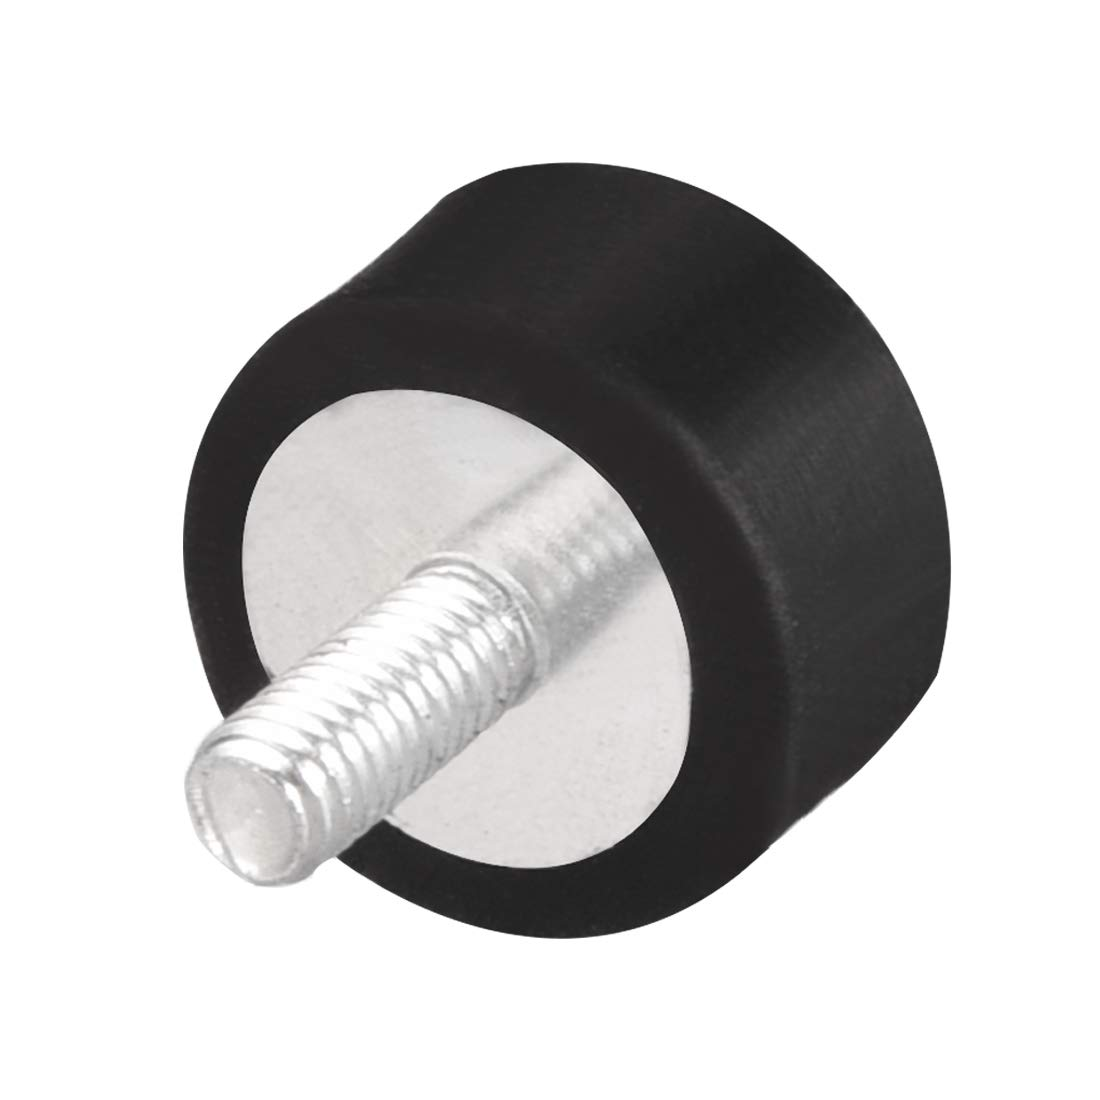 uxcell M5 Thread Male Female Rubber Mounts,Vibration Isolators,Shock Absorber 15mm x 15mm 8pcs